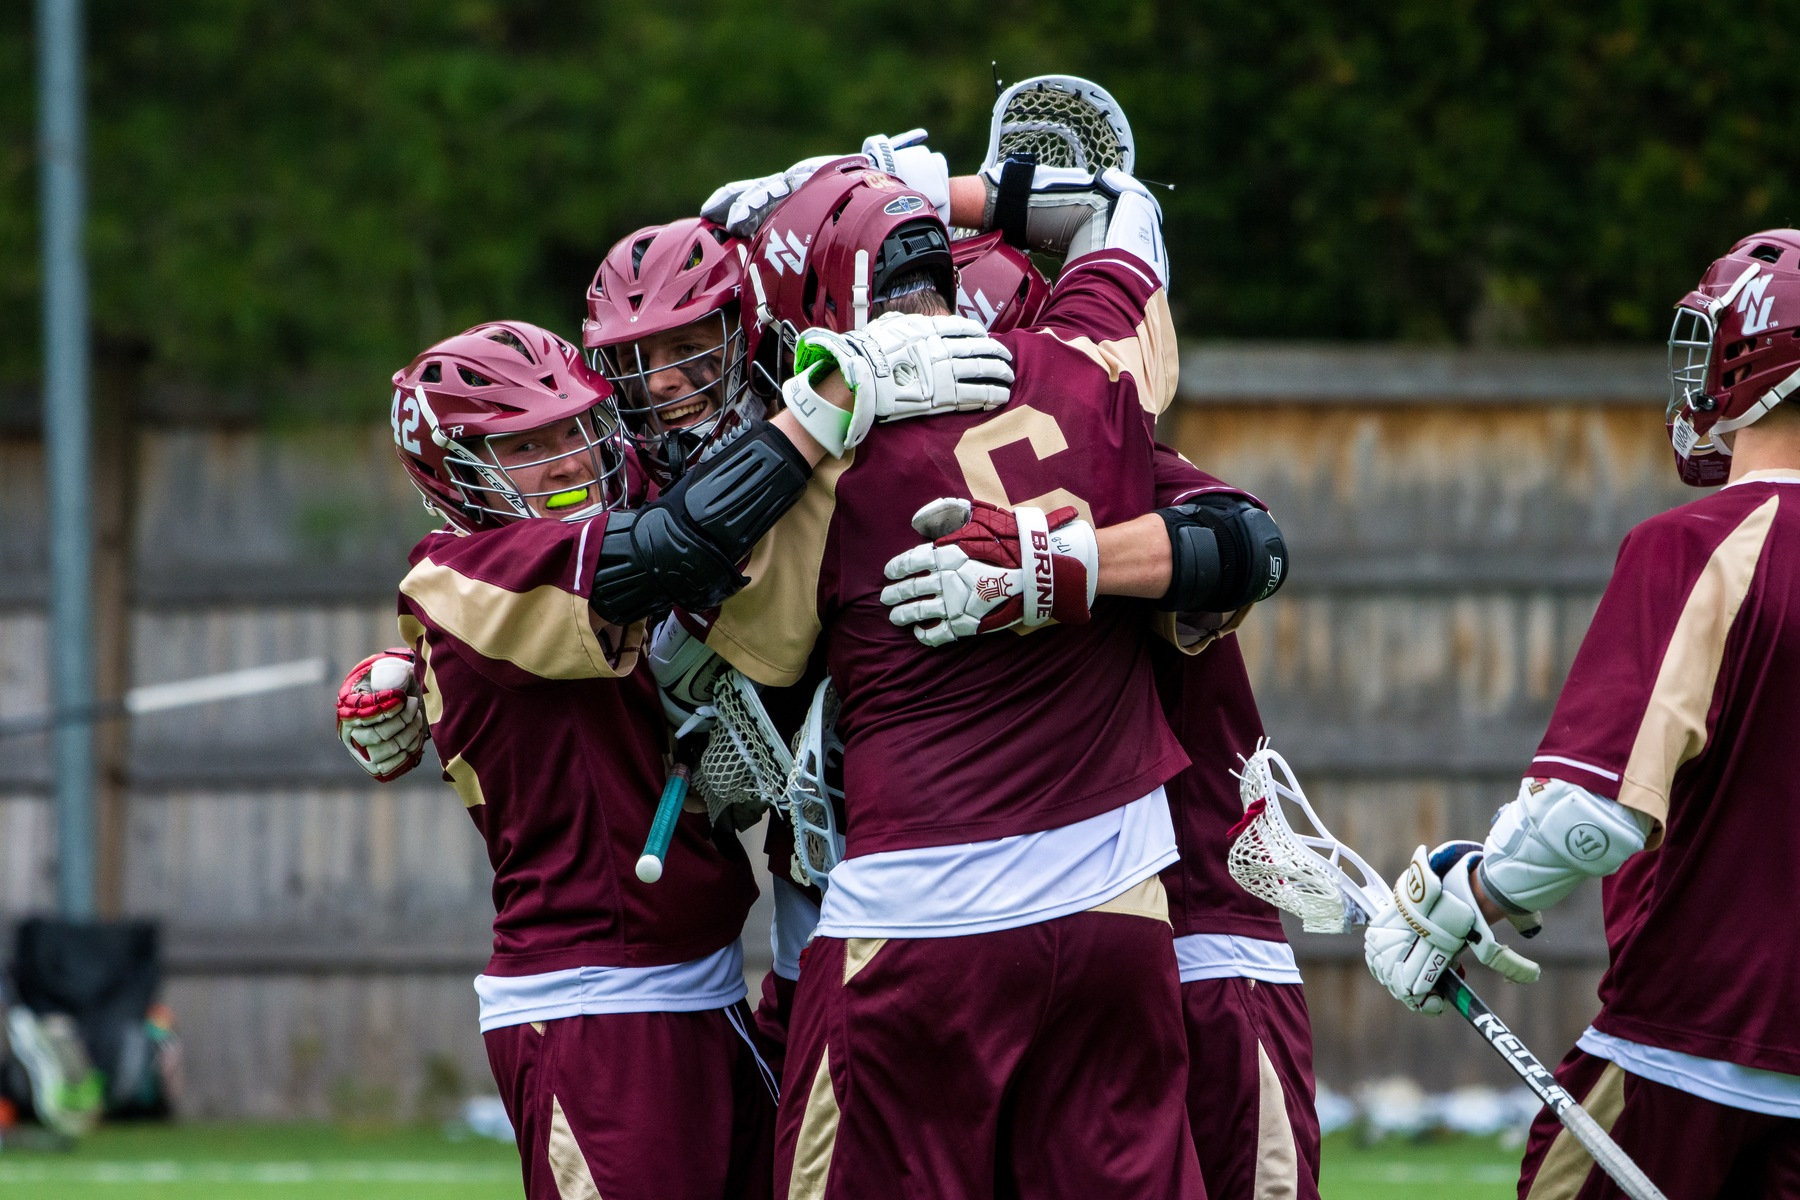 Men's Lacrosse: Norwich falls to New England College in the NCAA Tournament, 12-10